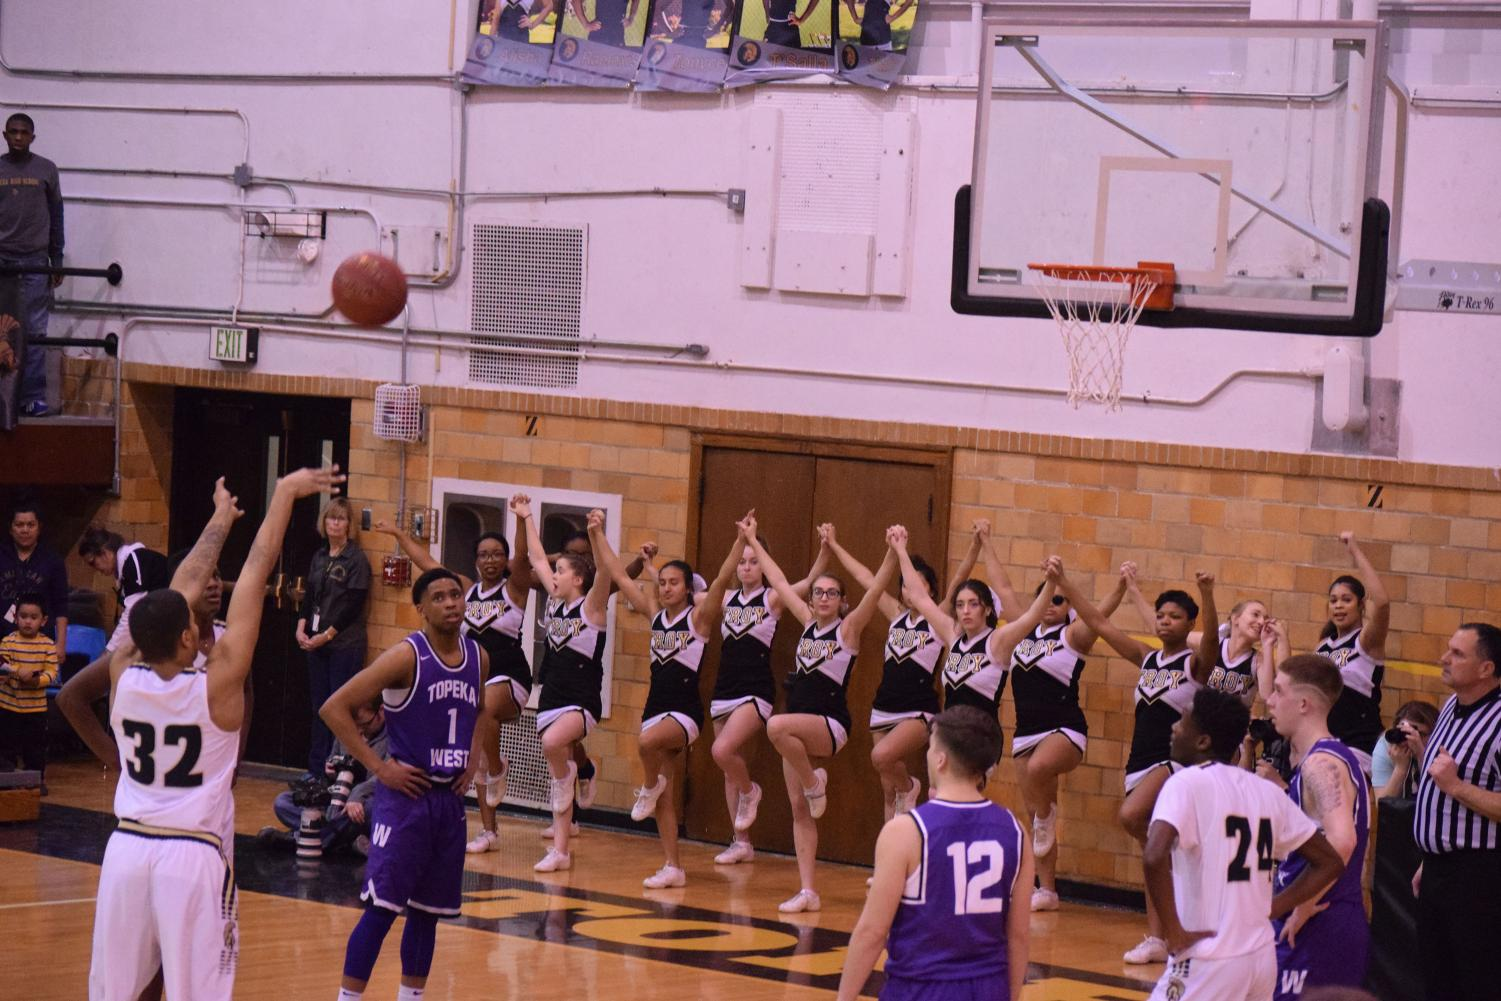 Topeka+High%27s+Darren+Canty+%2812%29+shoots+at+the+free-throw+line.